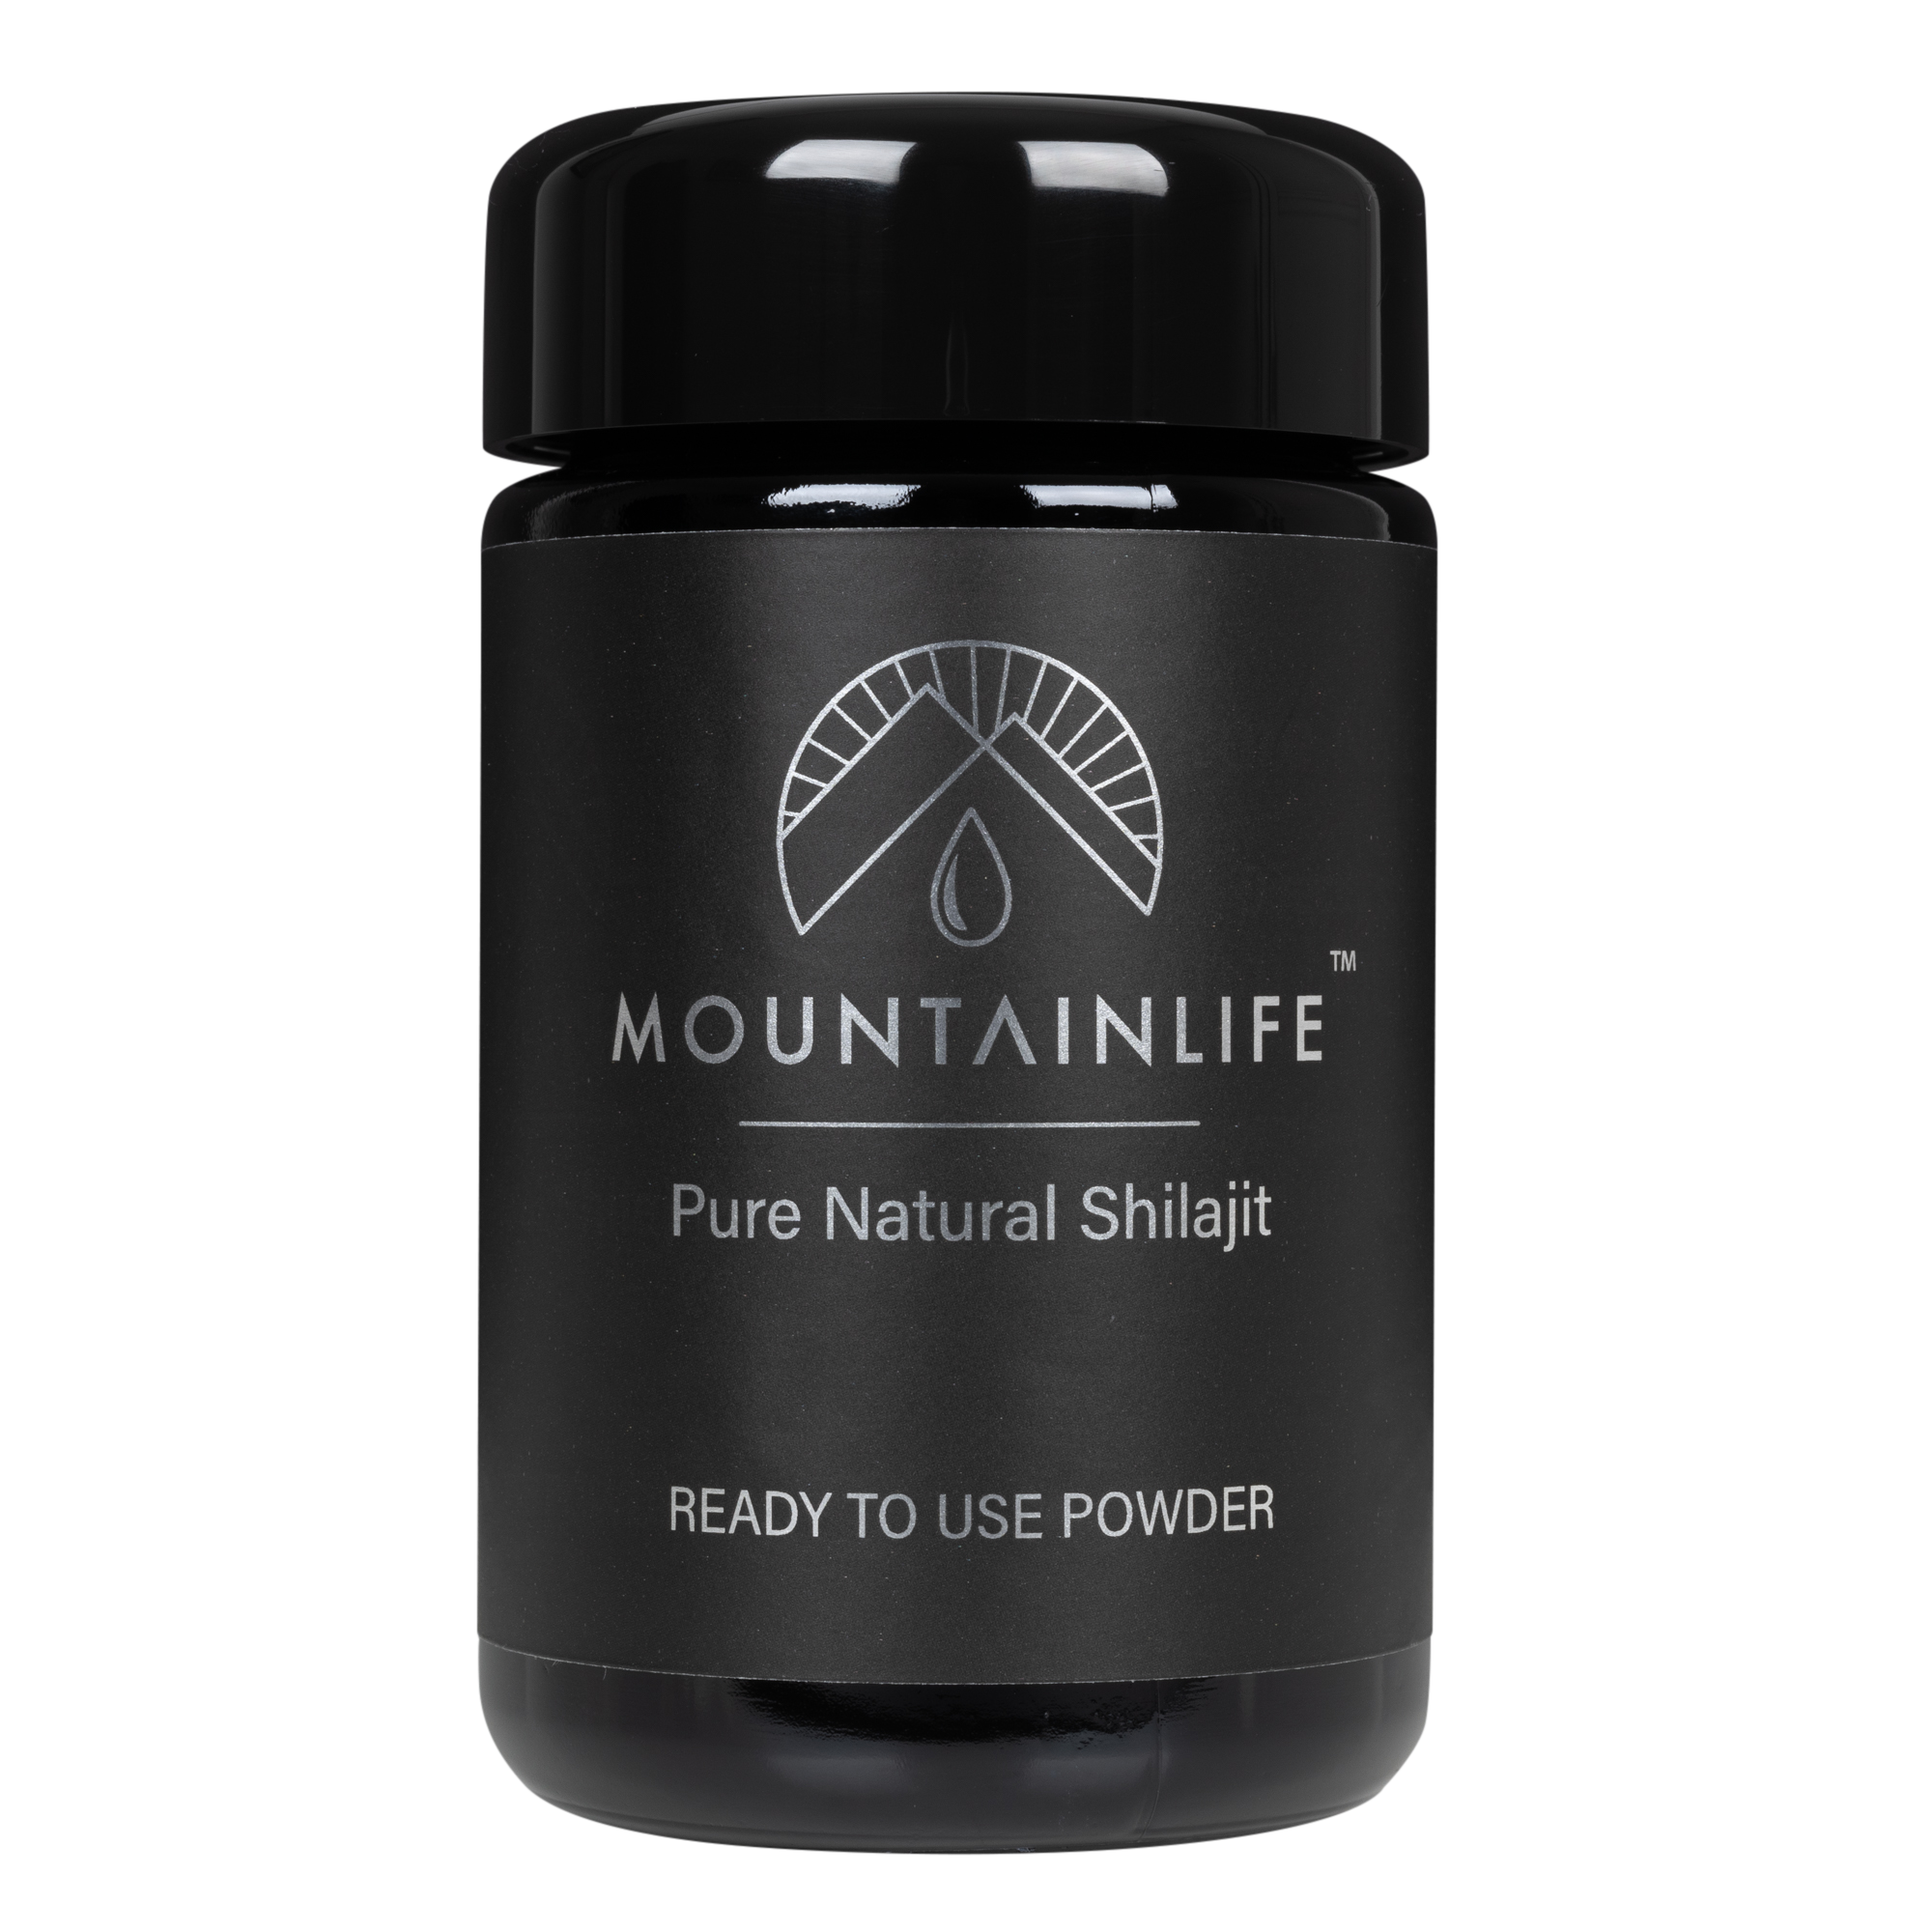 Mountainlife Natural Powdered Shilajit 50g UV jar with front on shot